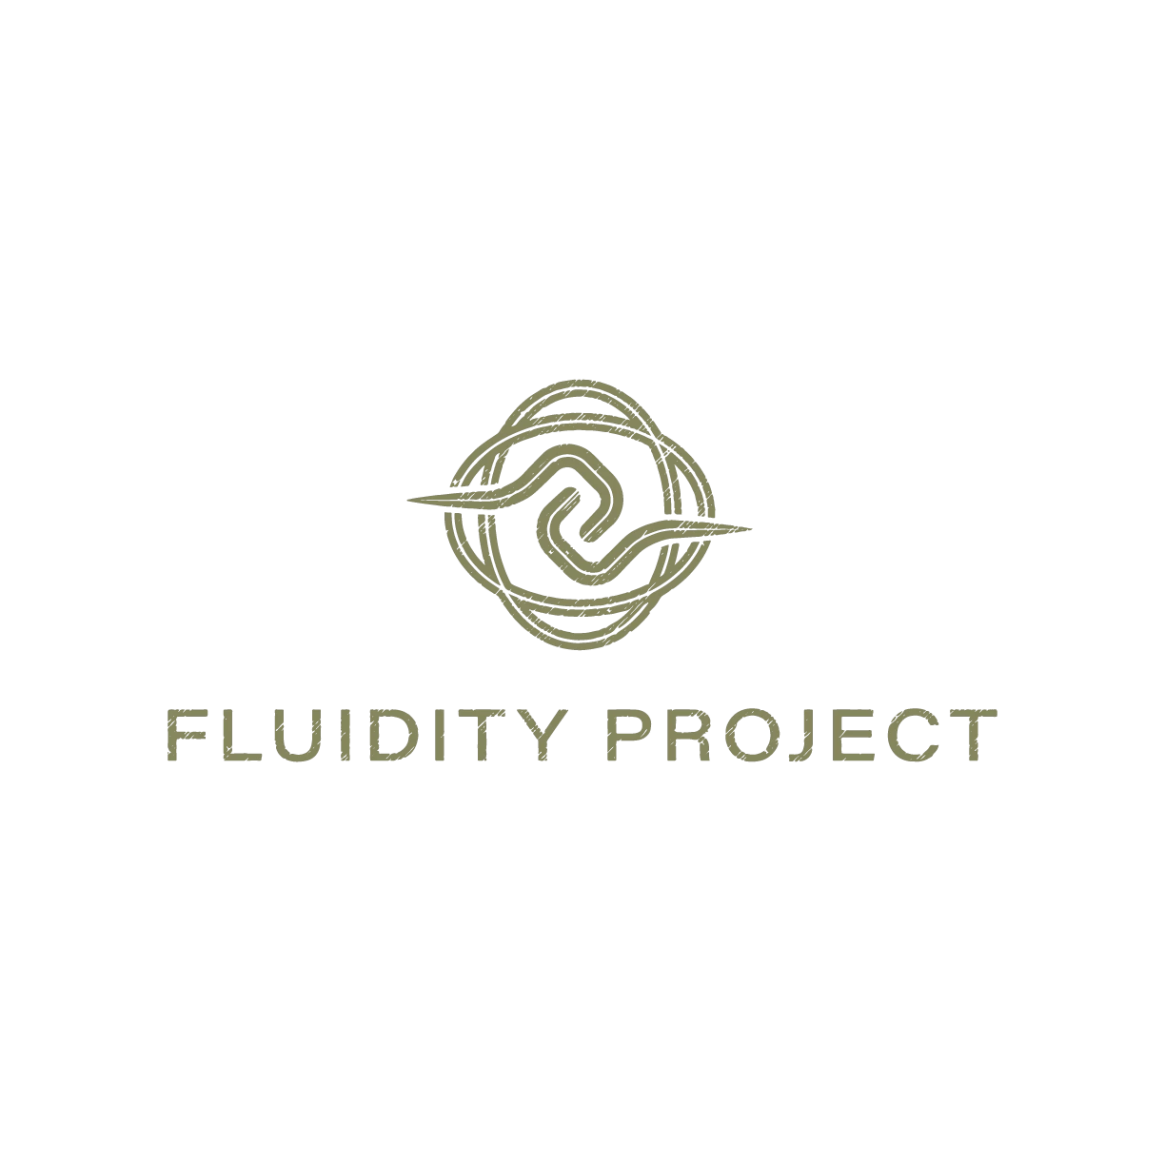 Fluidity_Project